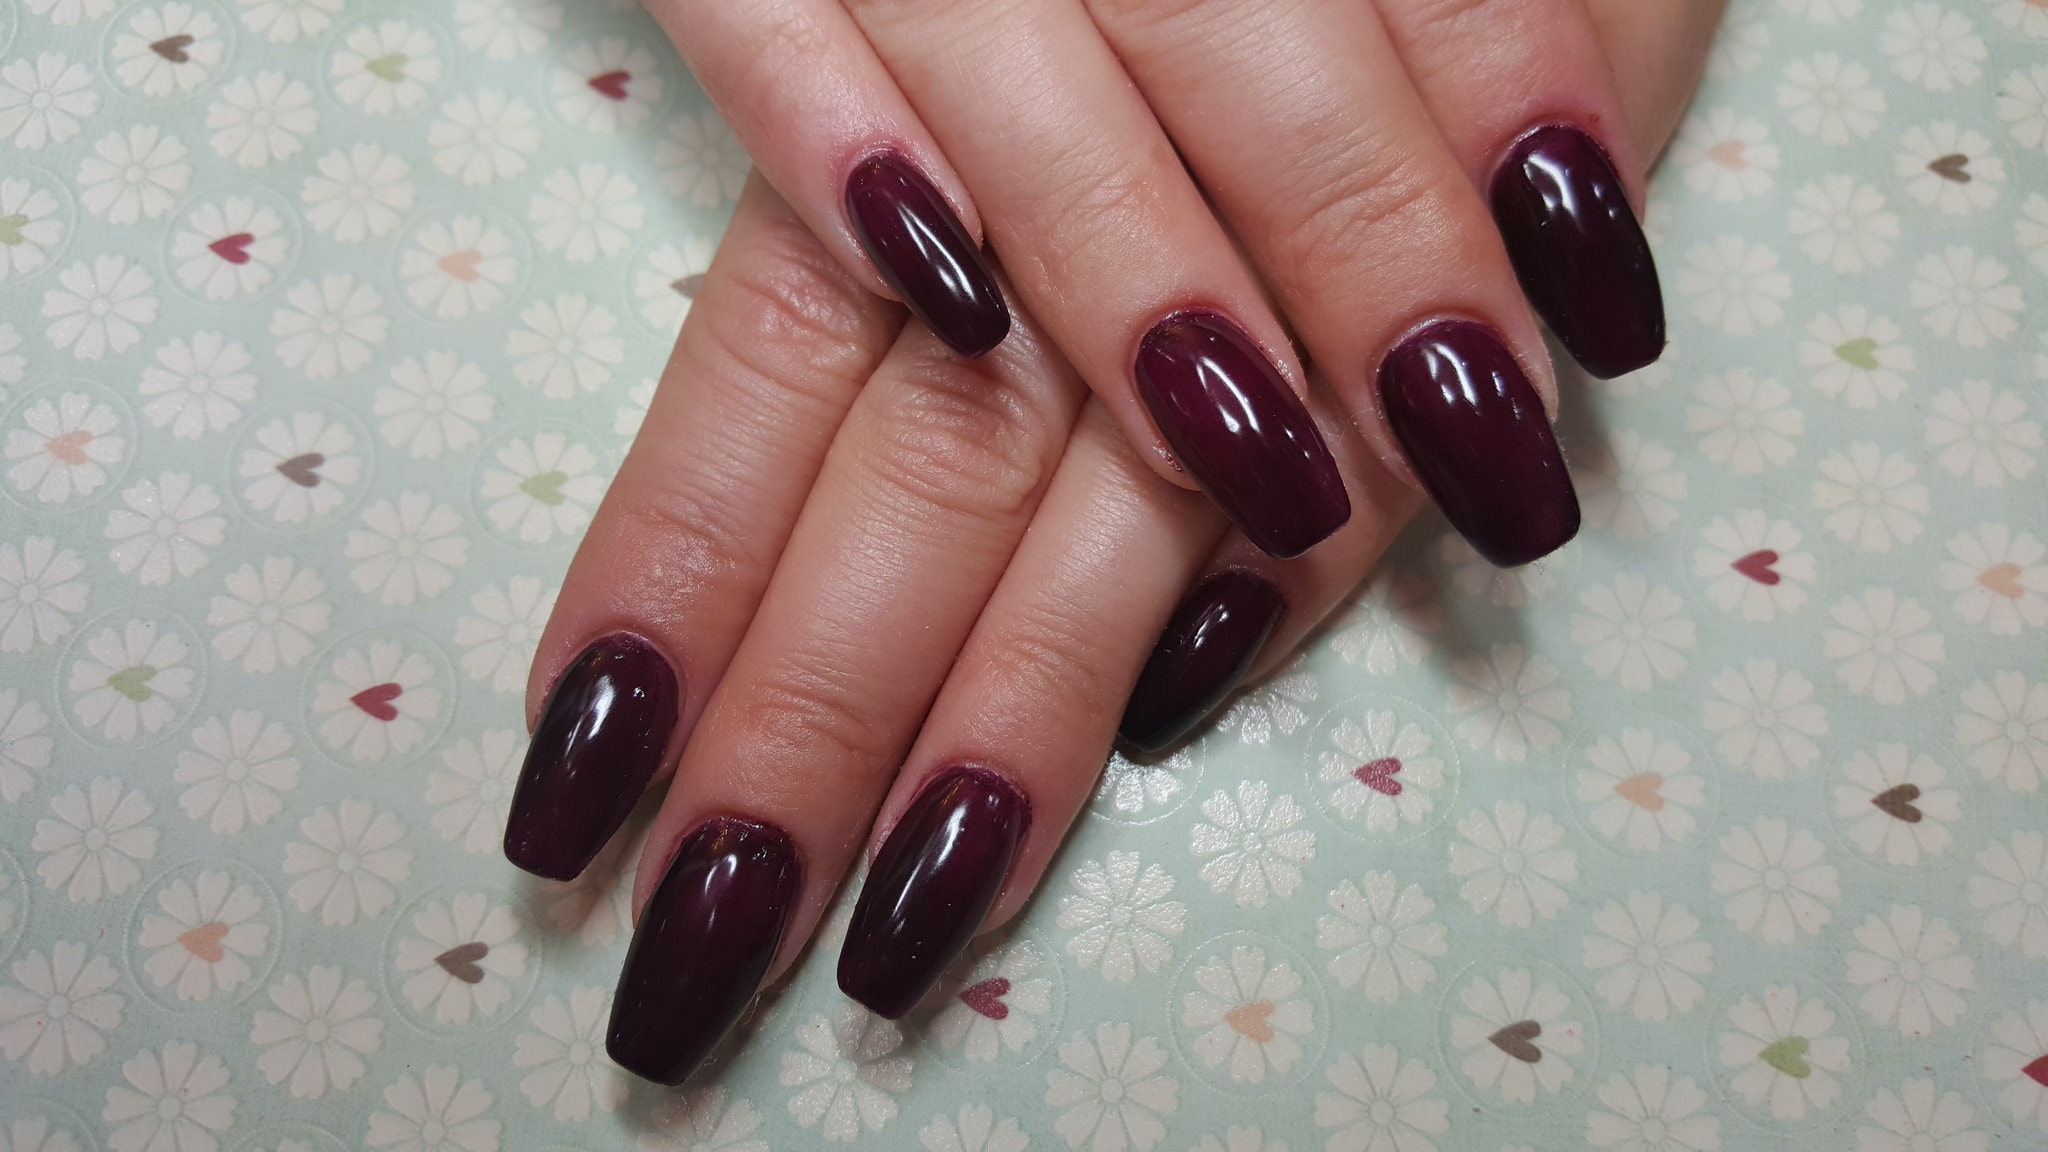 Beautiful Best Tools For Nail Art Small Nails Art For Valentine Regular Nail Art Trends Summer 2014 Chameleon Nail Polish Youthful Vicks Vapour Rub Nail Fungus SoftNail Salon Polish Rack 7 Things About Acrylic Nails You Should Know Before You Commit ..